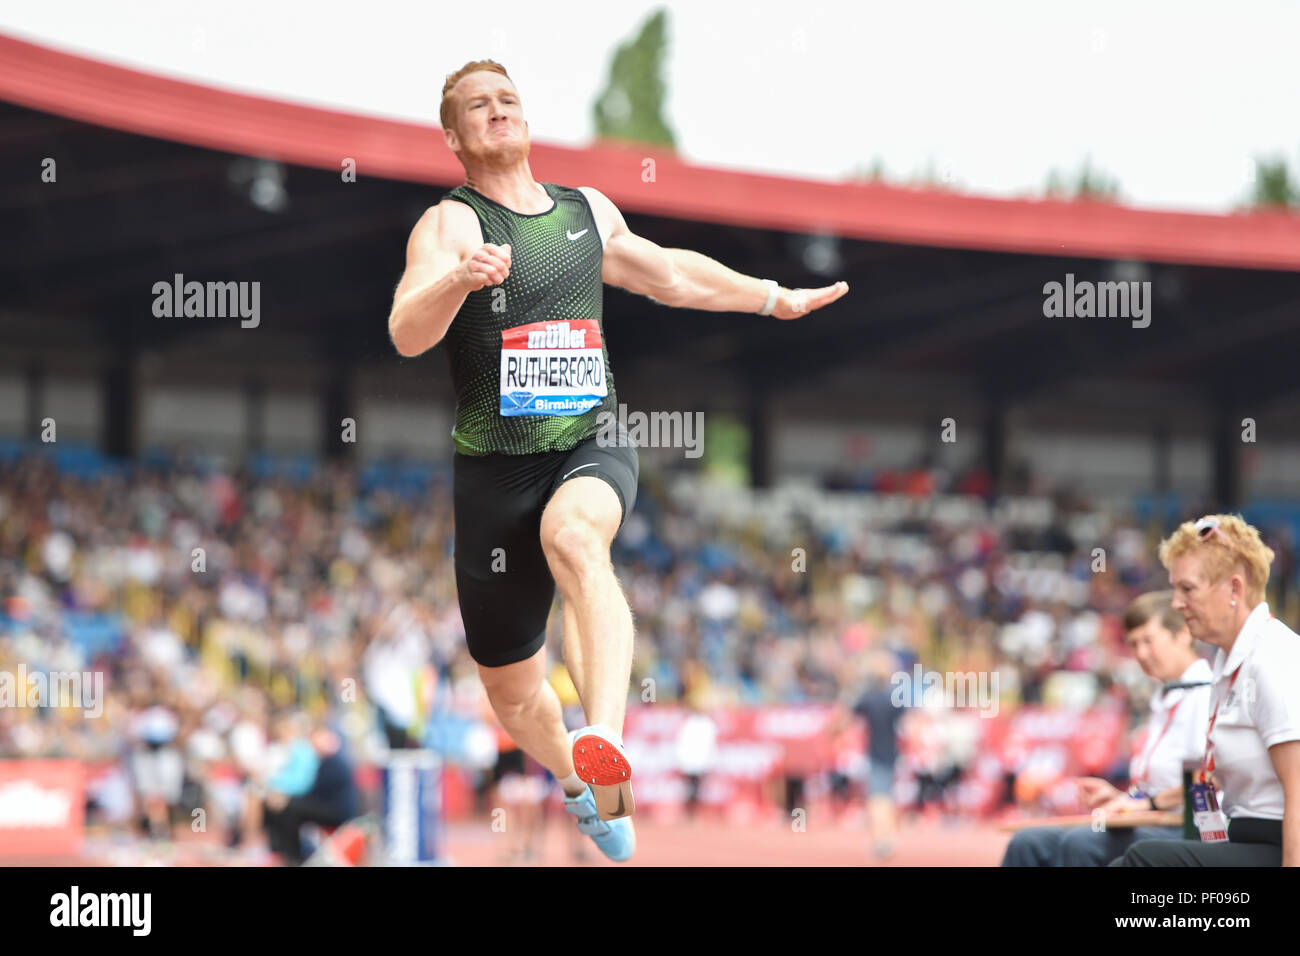 Birmingham, UK. 18th August 2018. Greg Rutherford competes his final Men's Long Jump during 2018 IAAF Diamond League - Birmingham at Alexander Stadium on Saturday, 18 August 2018. BIRMINGHAM, ENGLAND. Credit: Taka G Wu Credit: Taka Wu/Alamy Live News - Stock Image